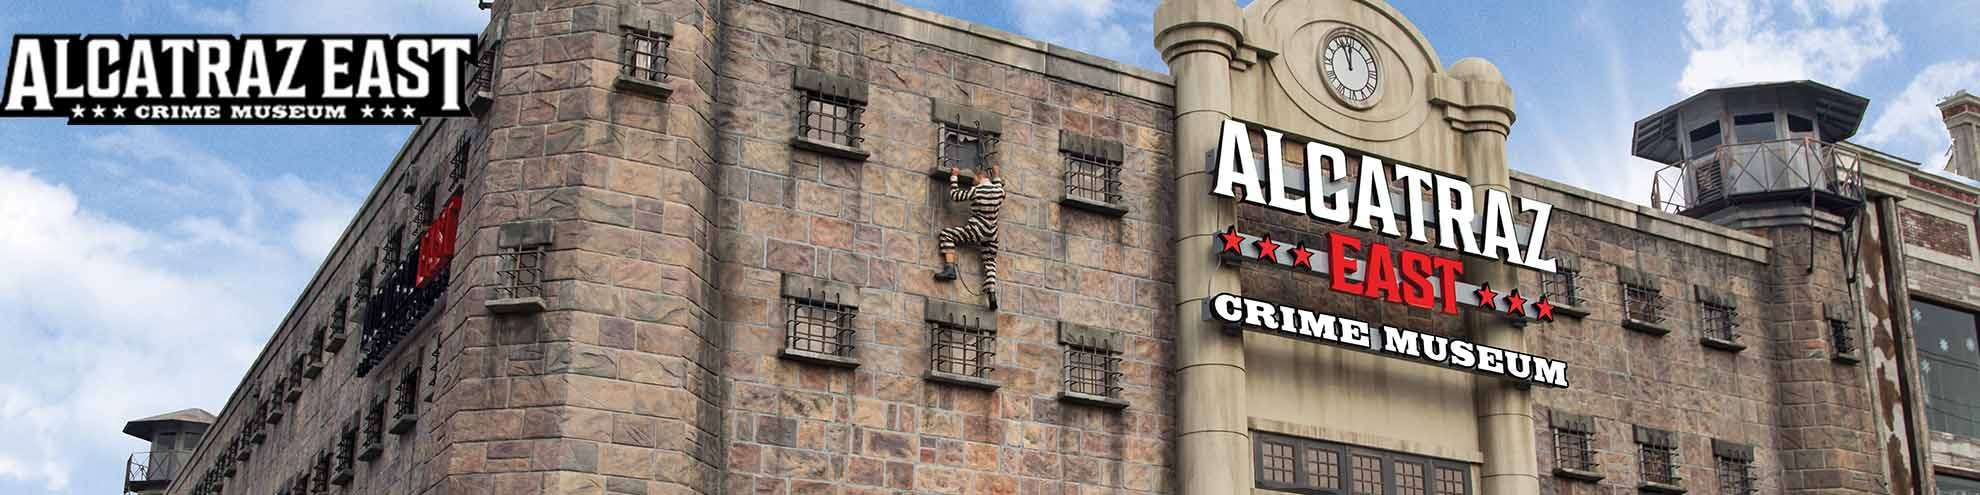 Alcatraz East Discount Tickets Pigeon Forge TN